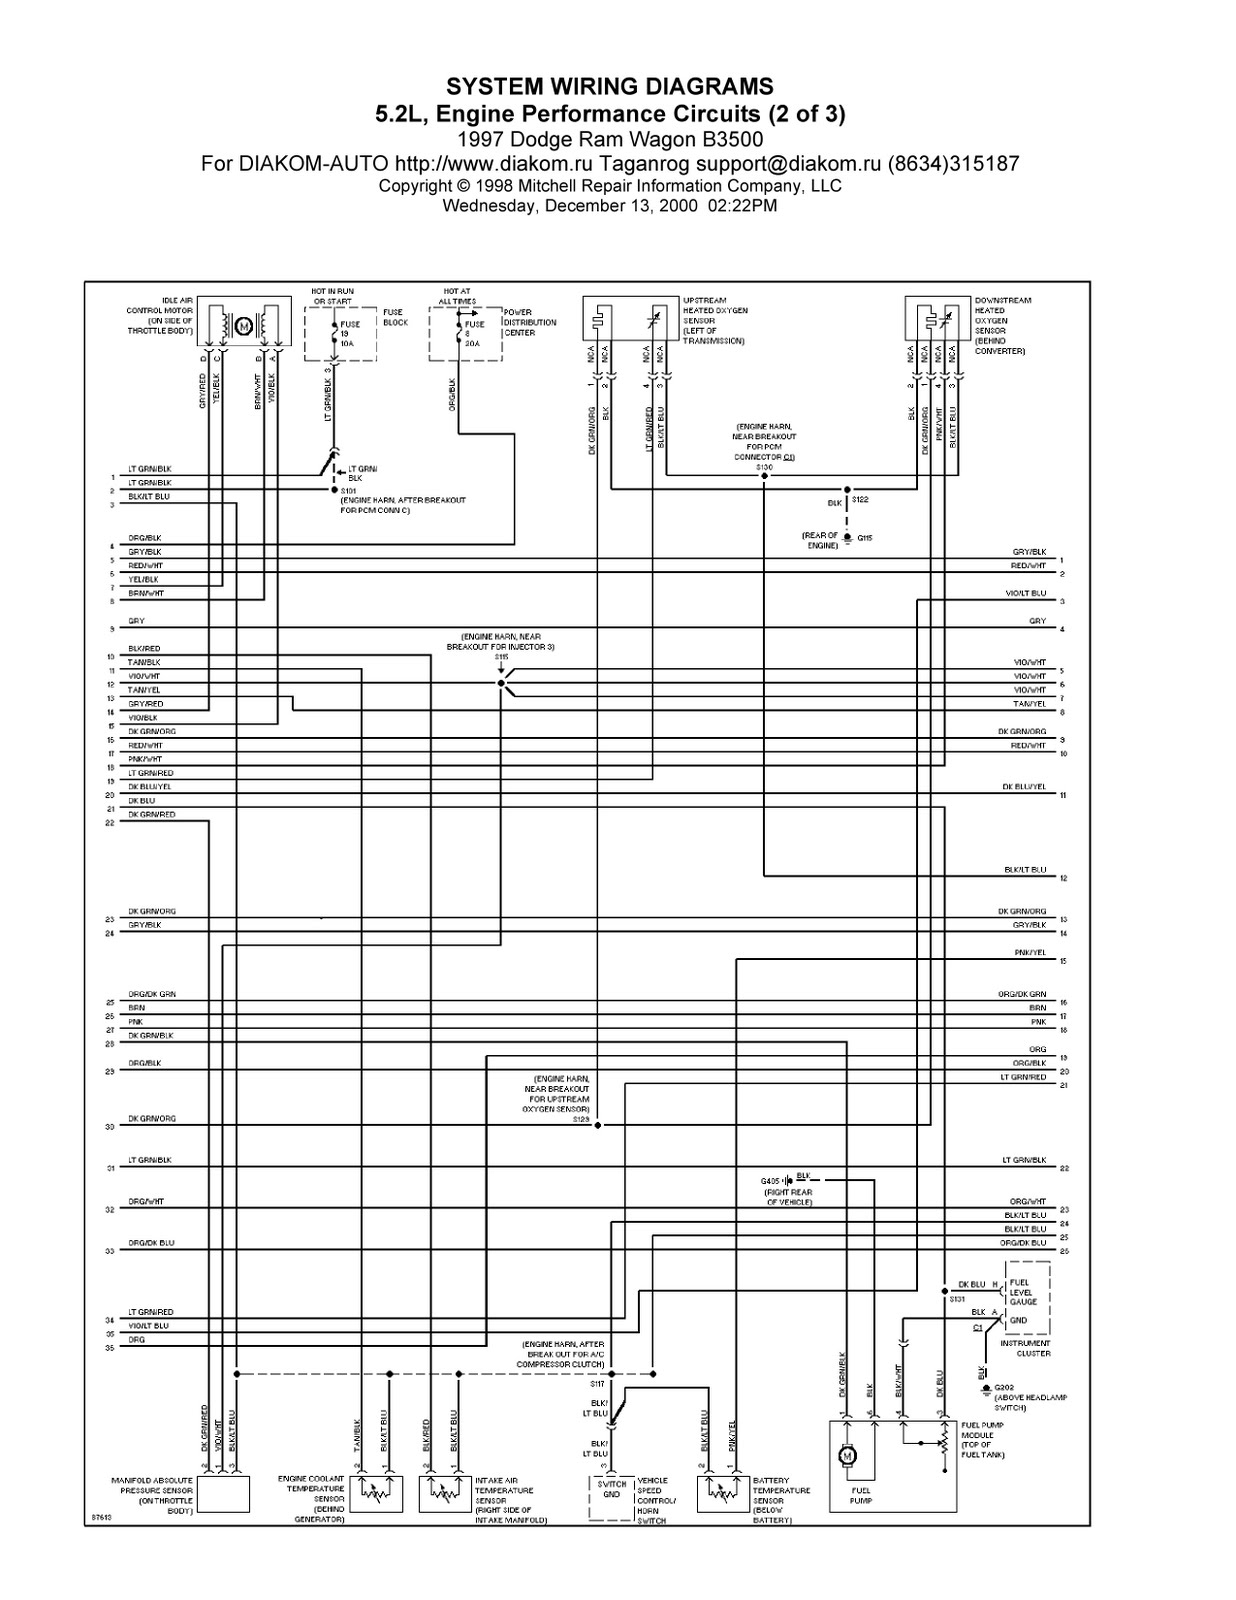 dodge ram 3500 wiring diagram diagram base website wiring diagram ...  jana-pinka.de